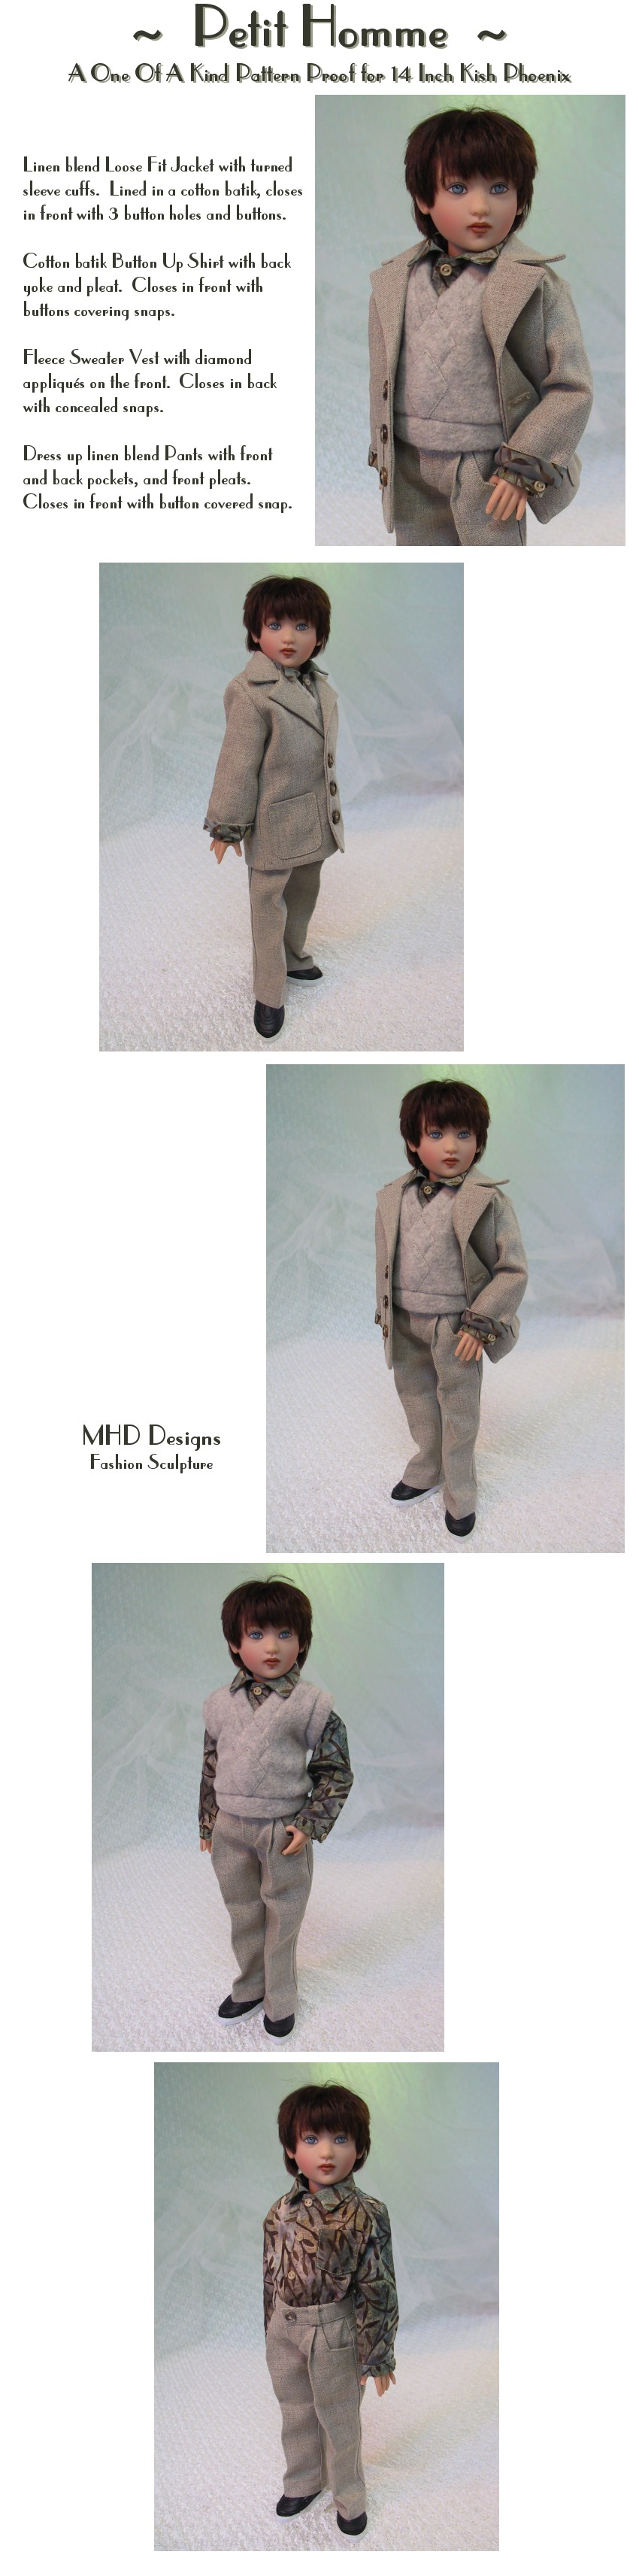 Little Man - a One Of A Kind Pattern Proof by MHD Designs - High Resolution Photographs, your patience is appreciated!